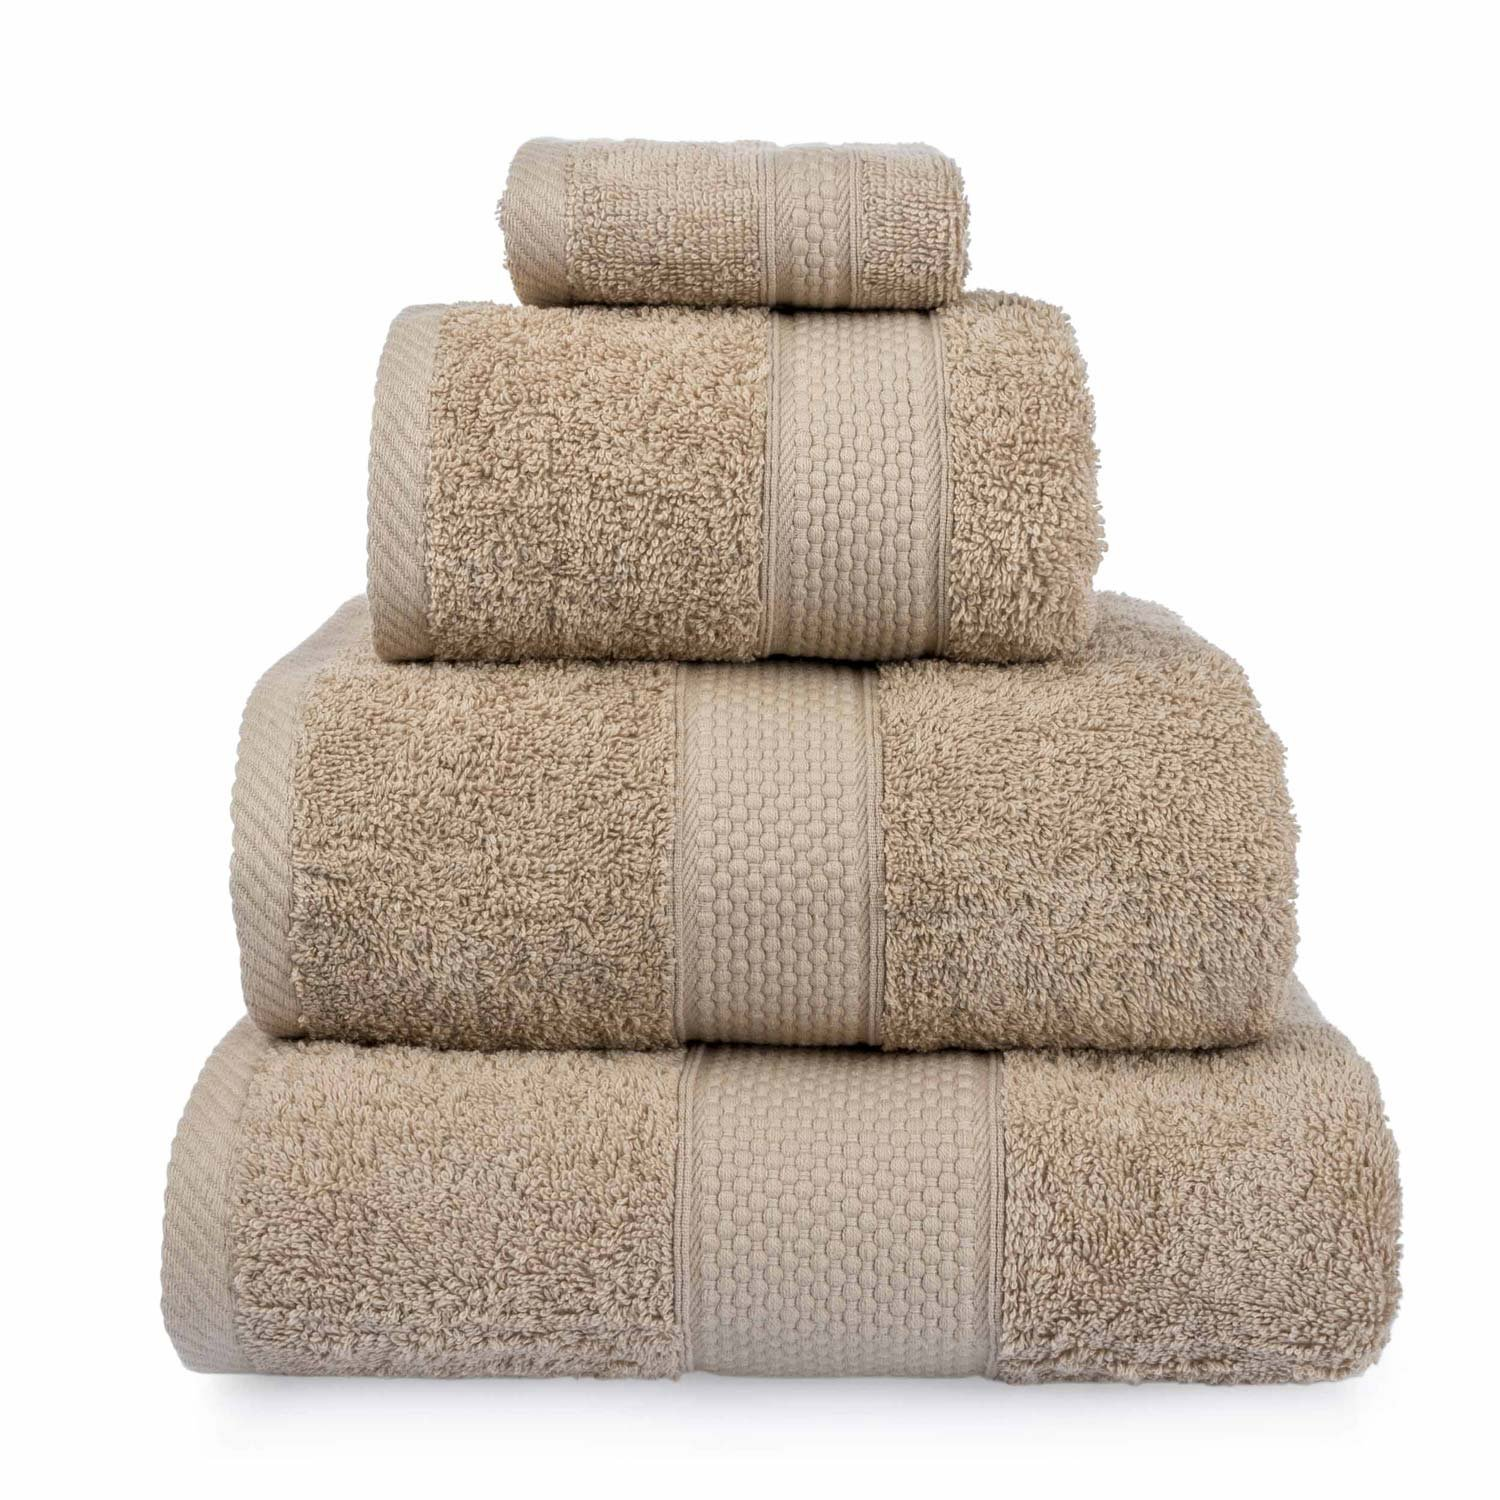 Homescapes Turkish Cotton 4 Piece Bath Towel Set Chocolate Very Soft and Absorbent, 500 GSM Heavy Weight for everyday Luxury